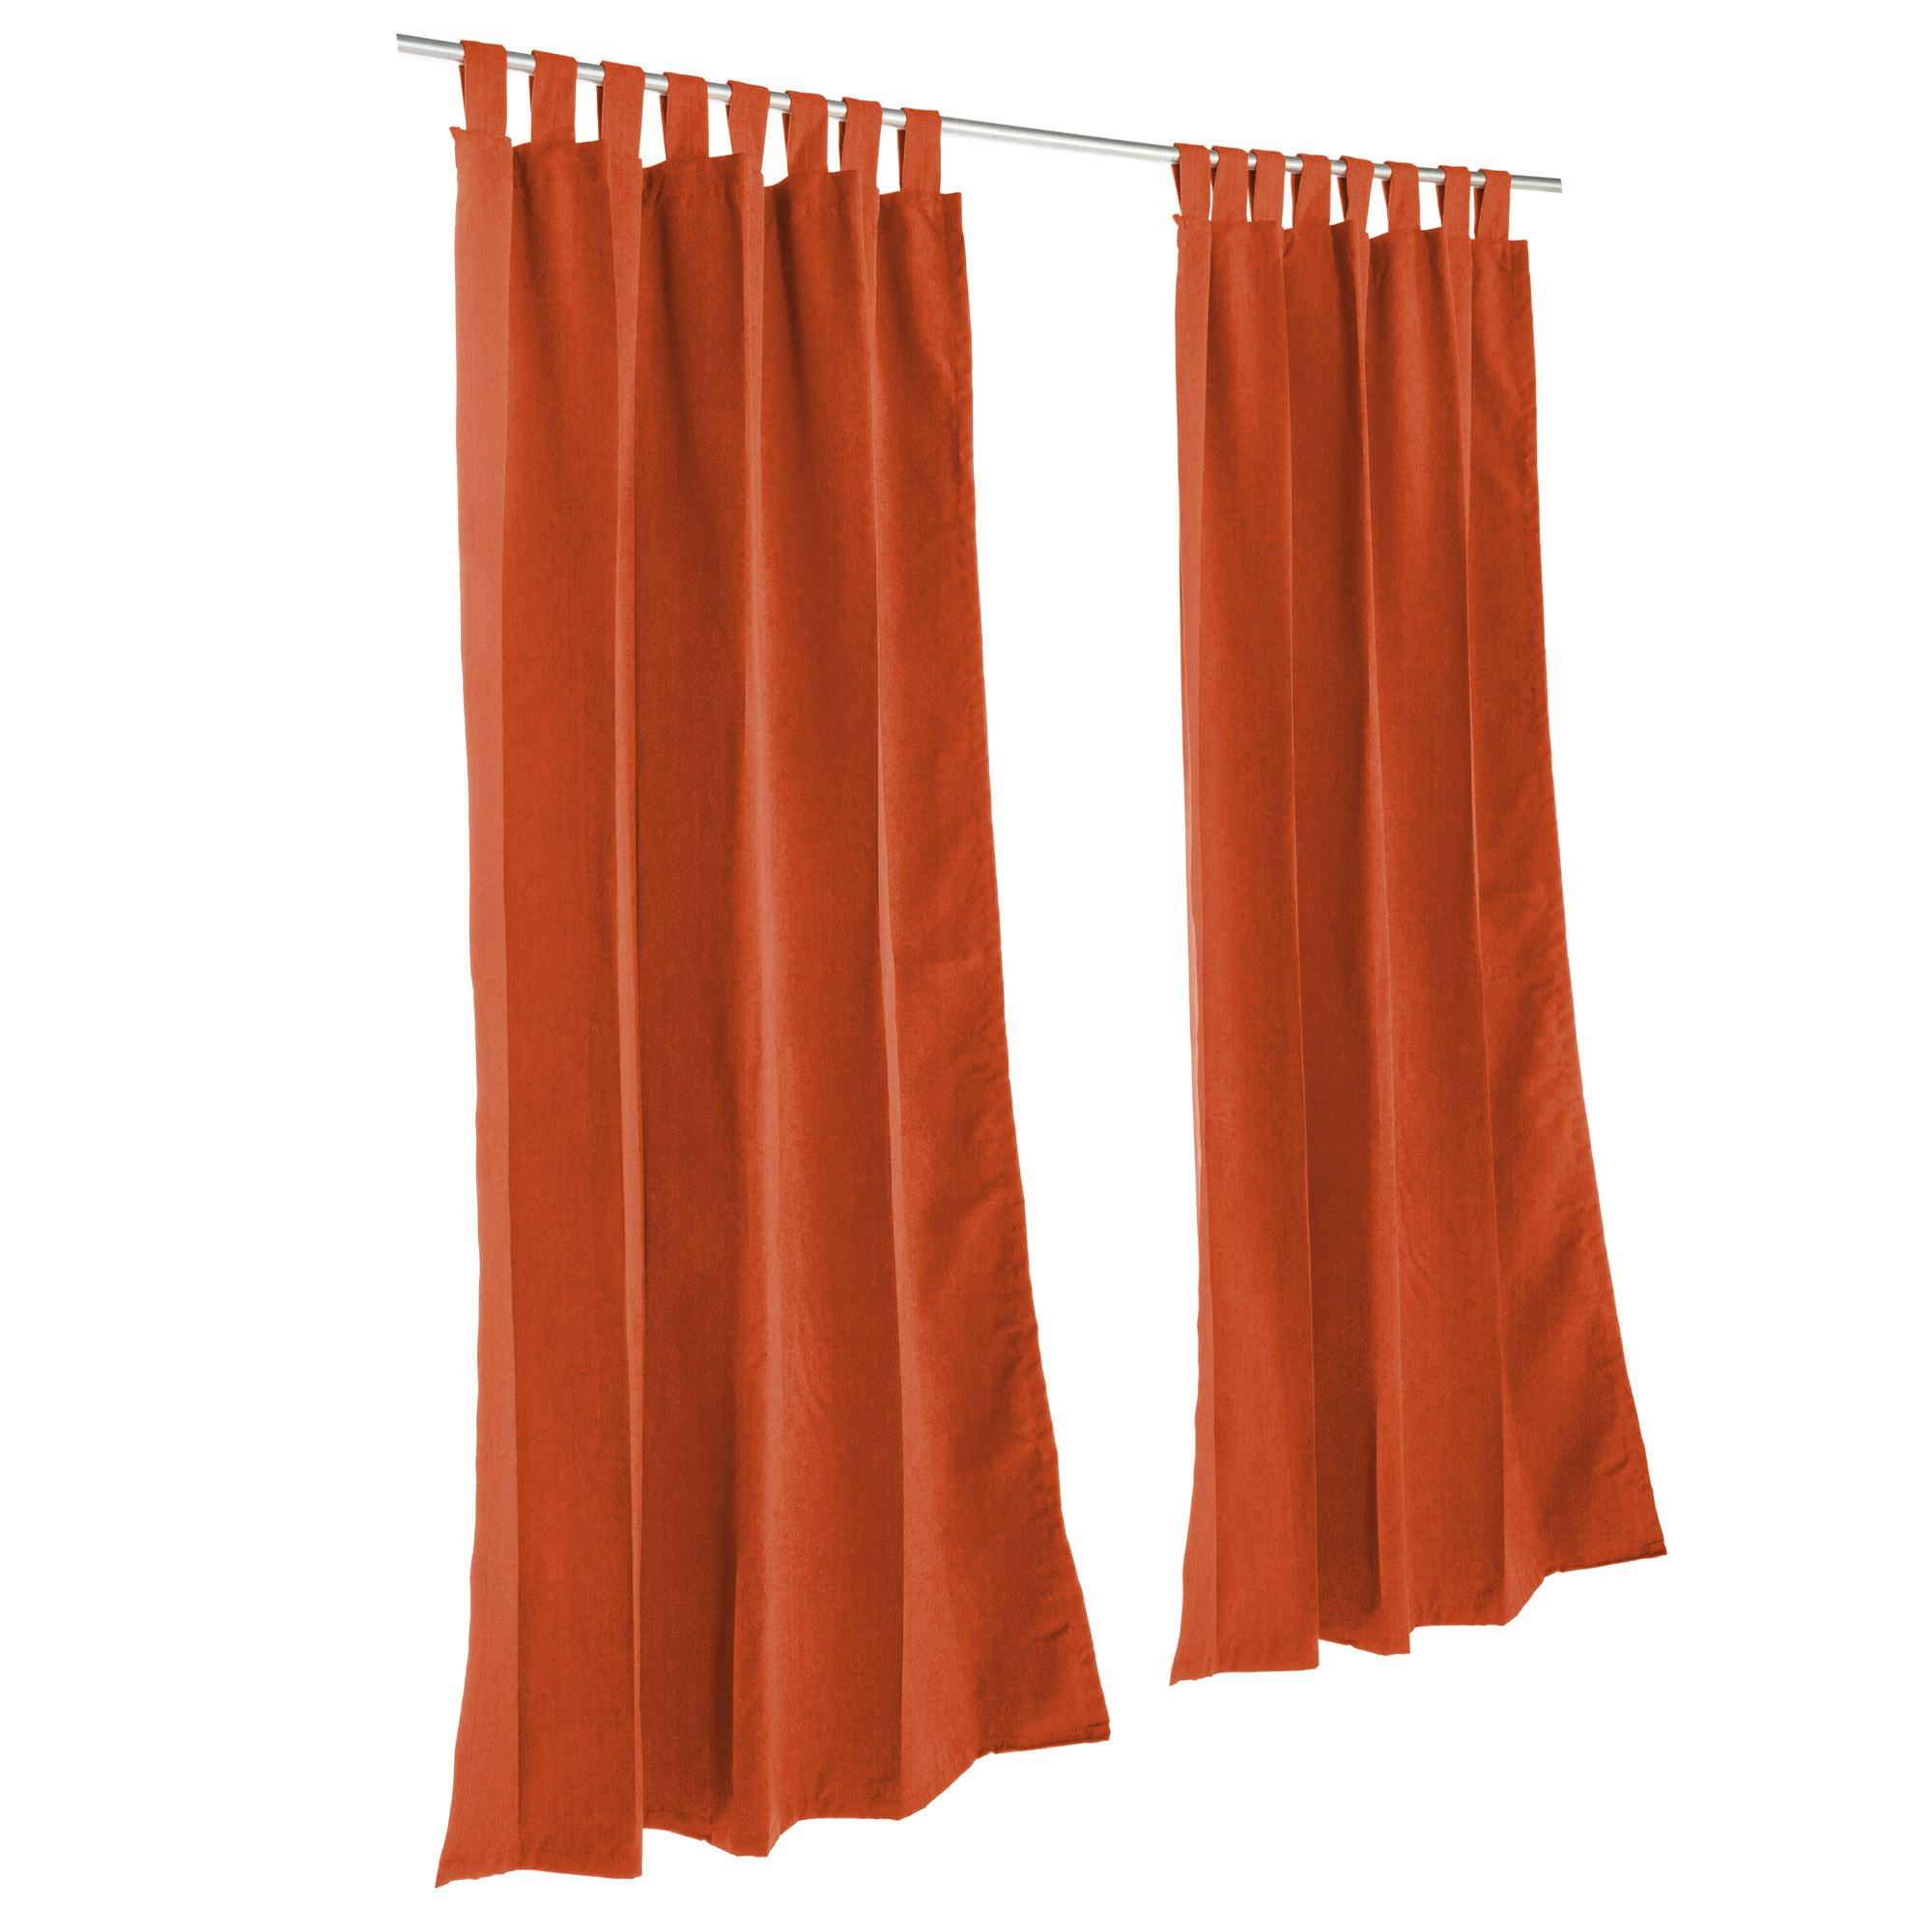 concept curtains canvas with outdoor makeover trend gazebo patio striped cloth ud uncategorized for sasg and marvelous diy drop cabana